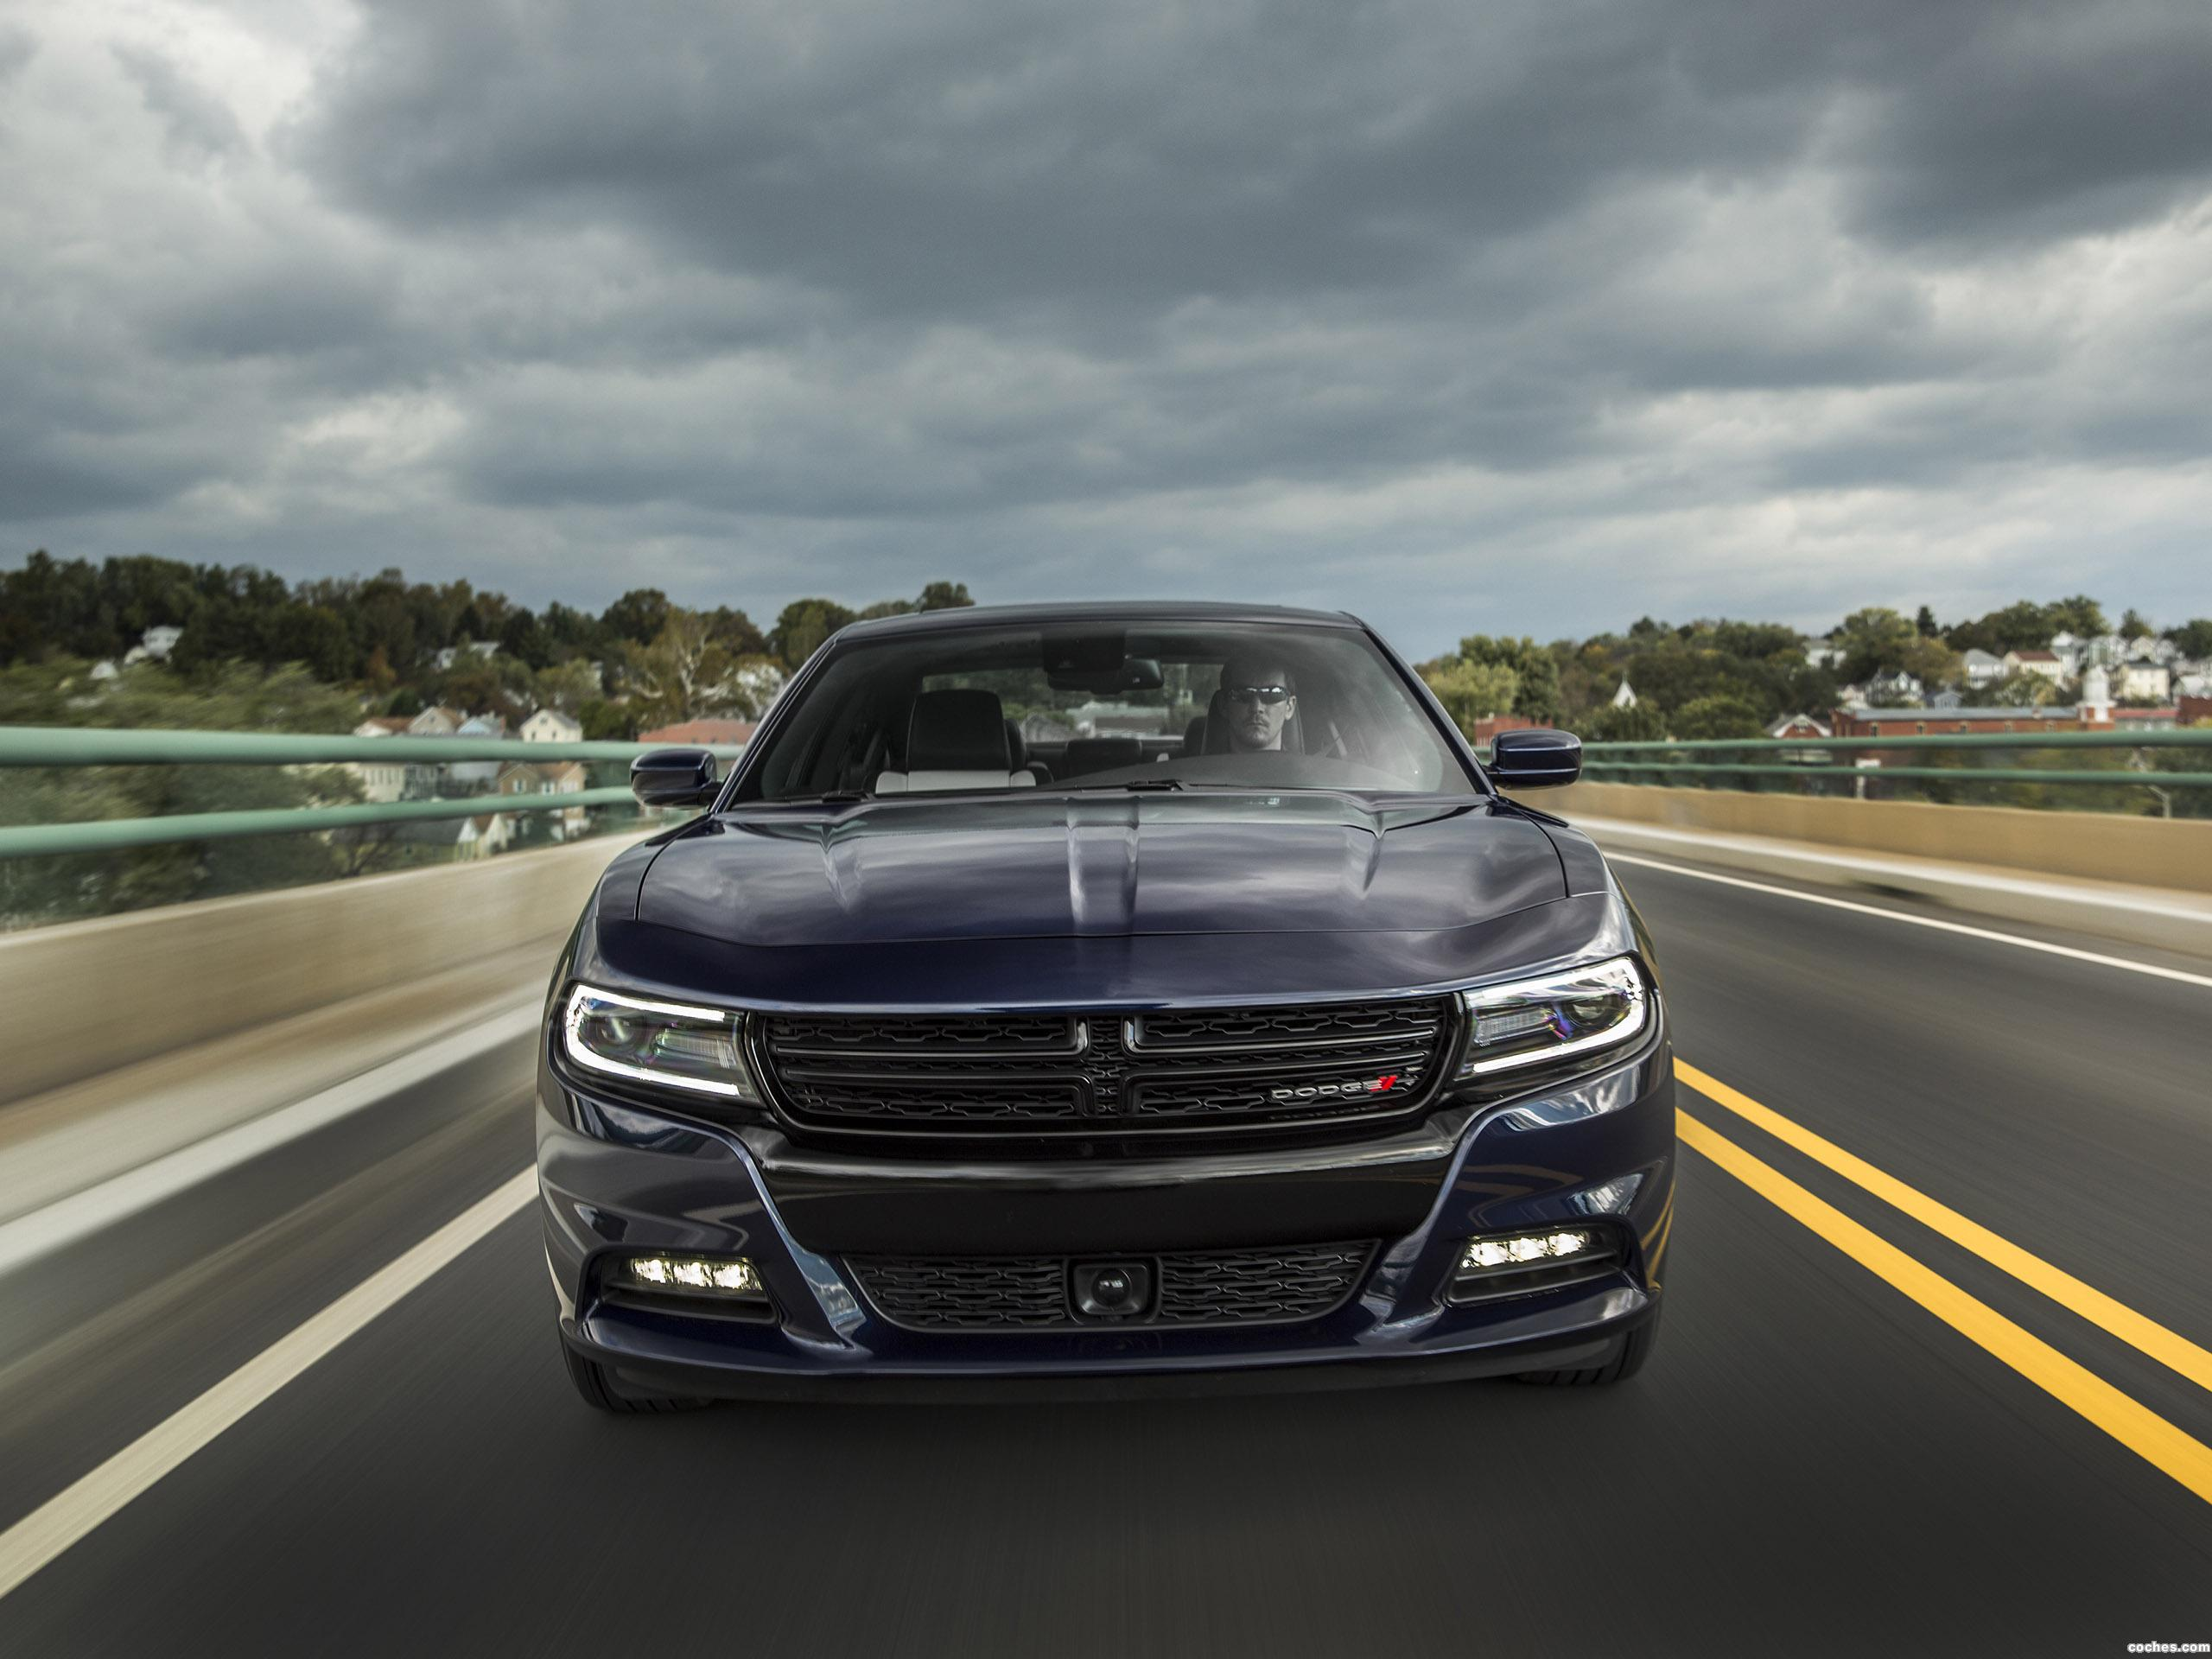 dodge charger sxt rallye awd 2015 r7 dodge charger sxt rallye awd 2015. Black Bedroom Furniture Sets. Home Design Ideas